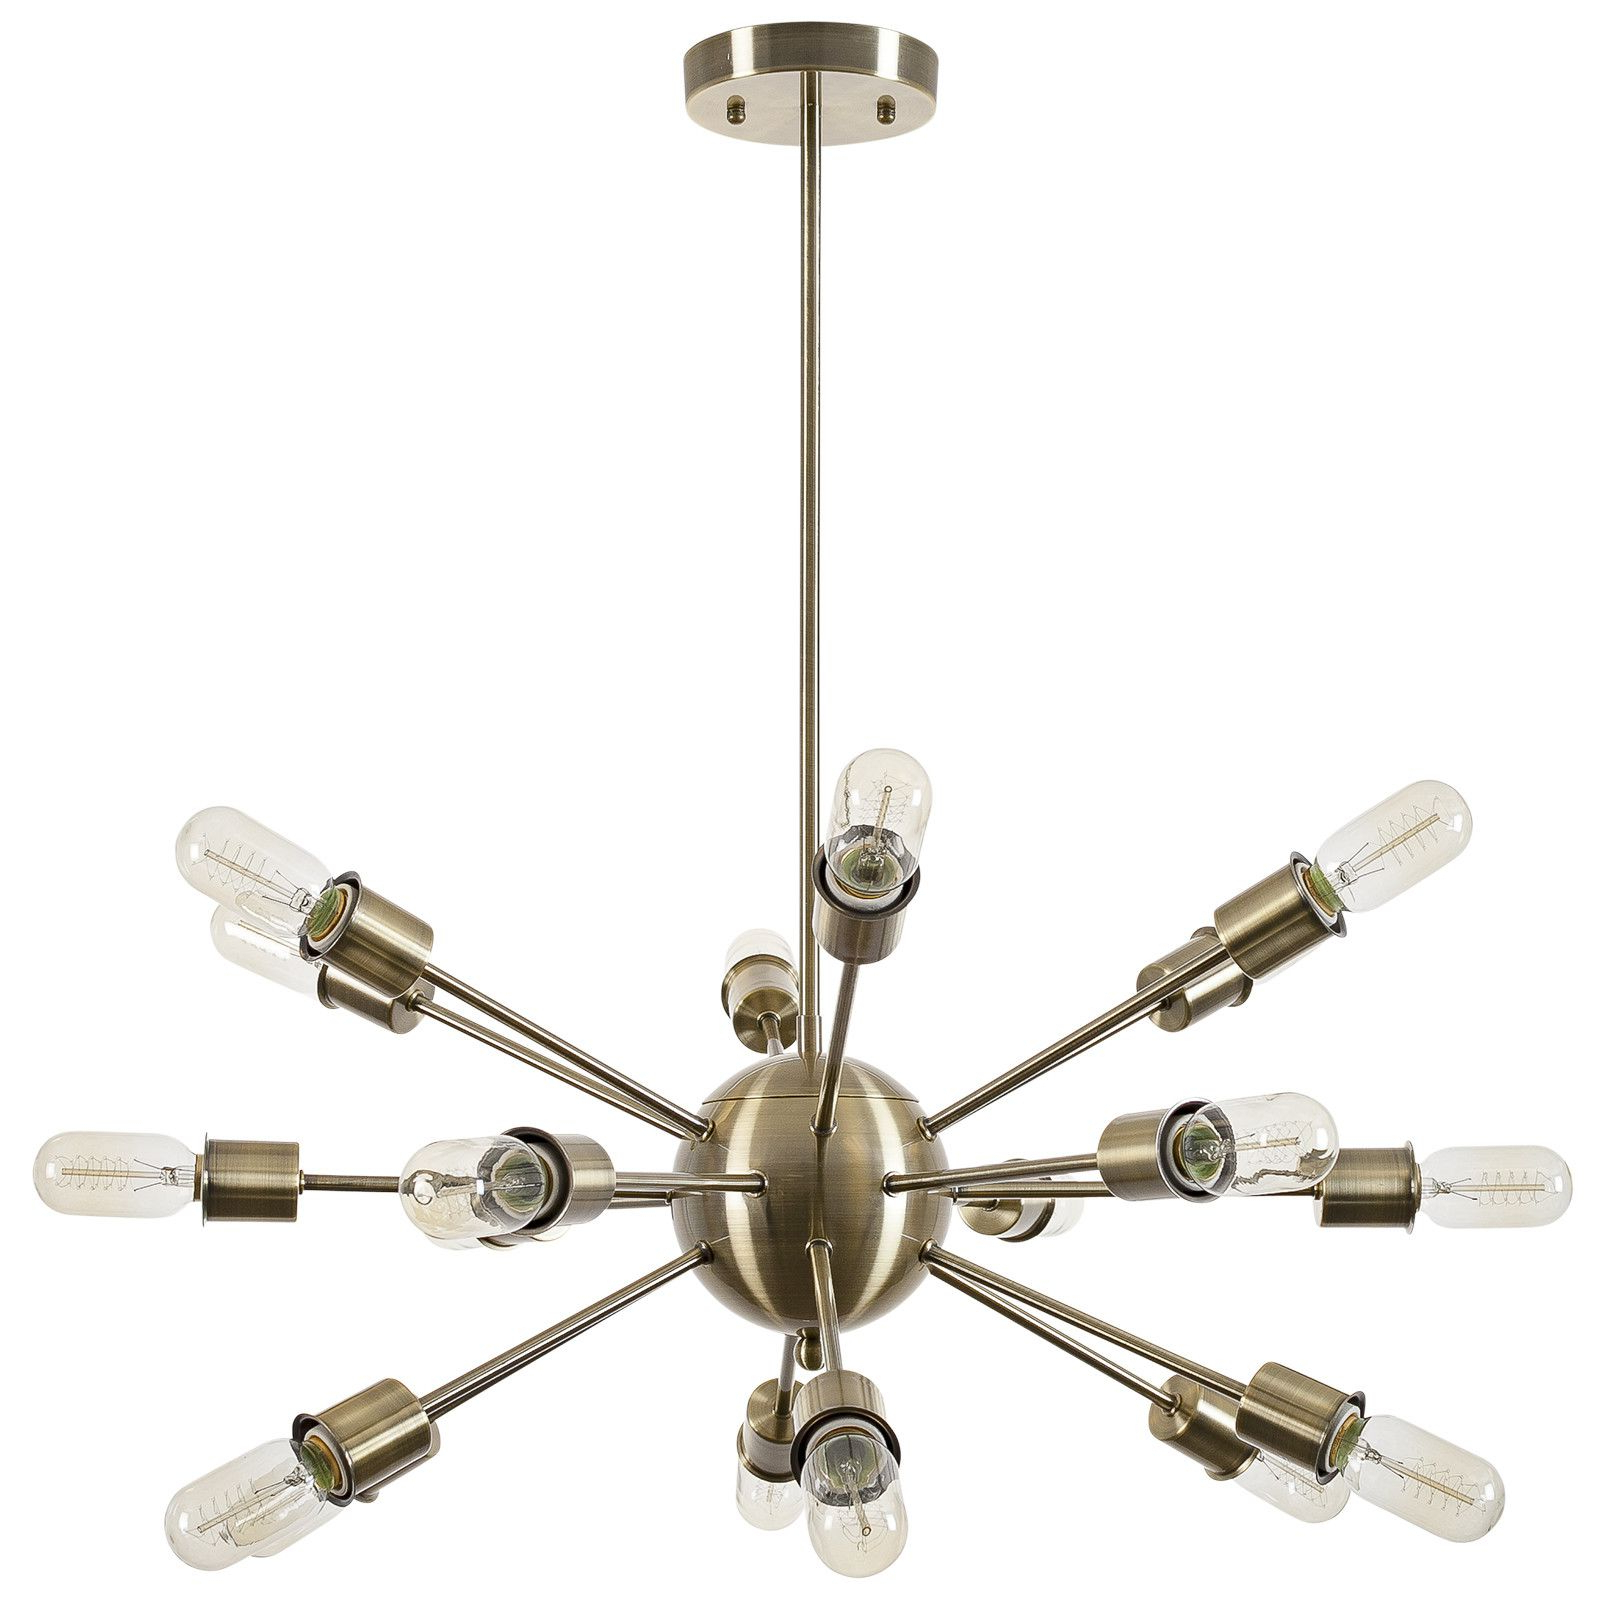 Defreitas 18 Light Sputnik Chandeliers Throughout Most Recently Released Sputnik 18 Light Chandelier (Gallery 7 of 20)